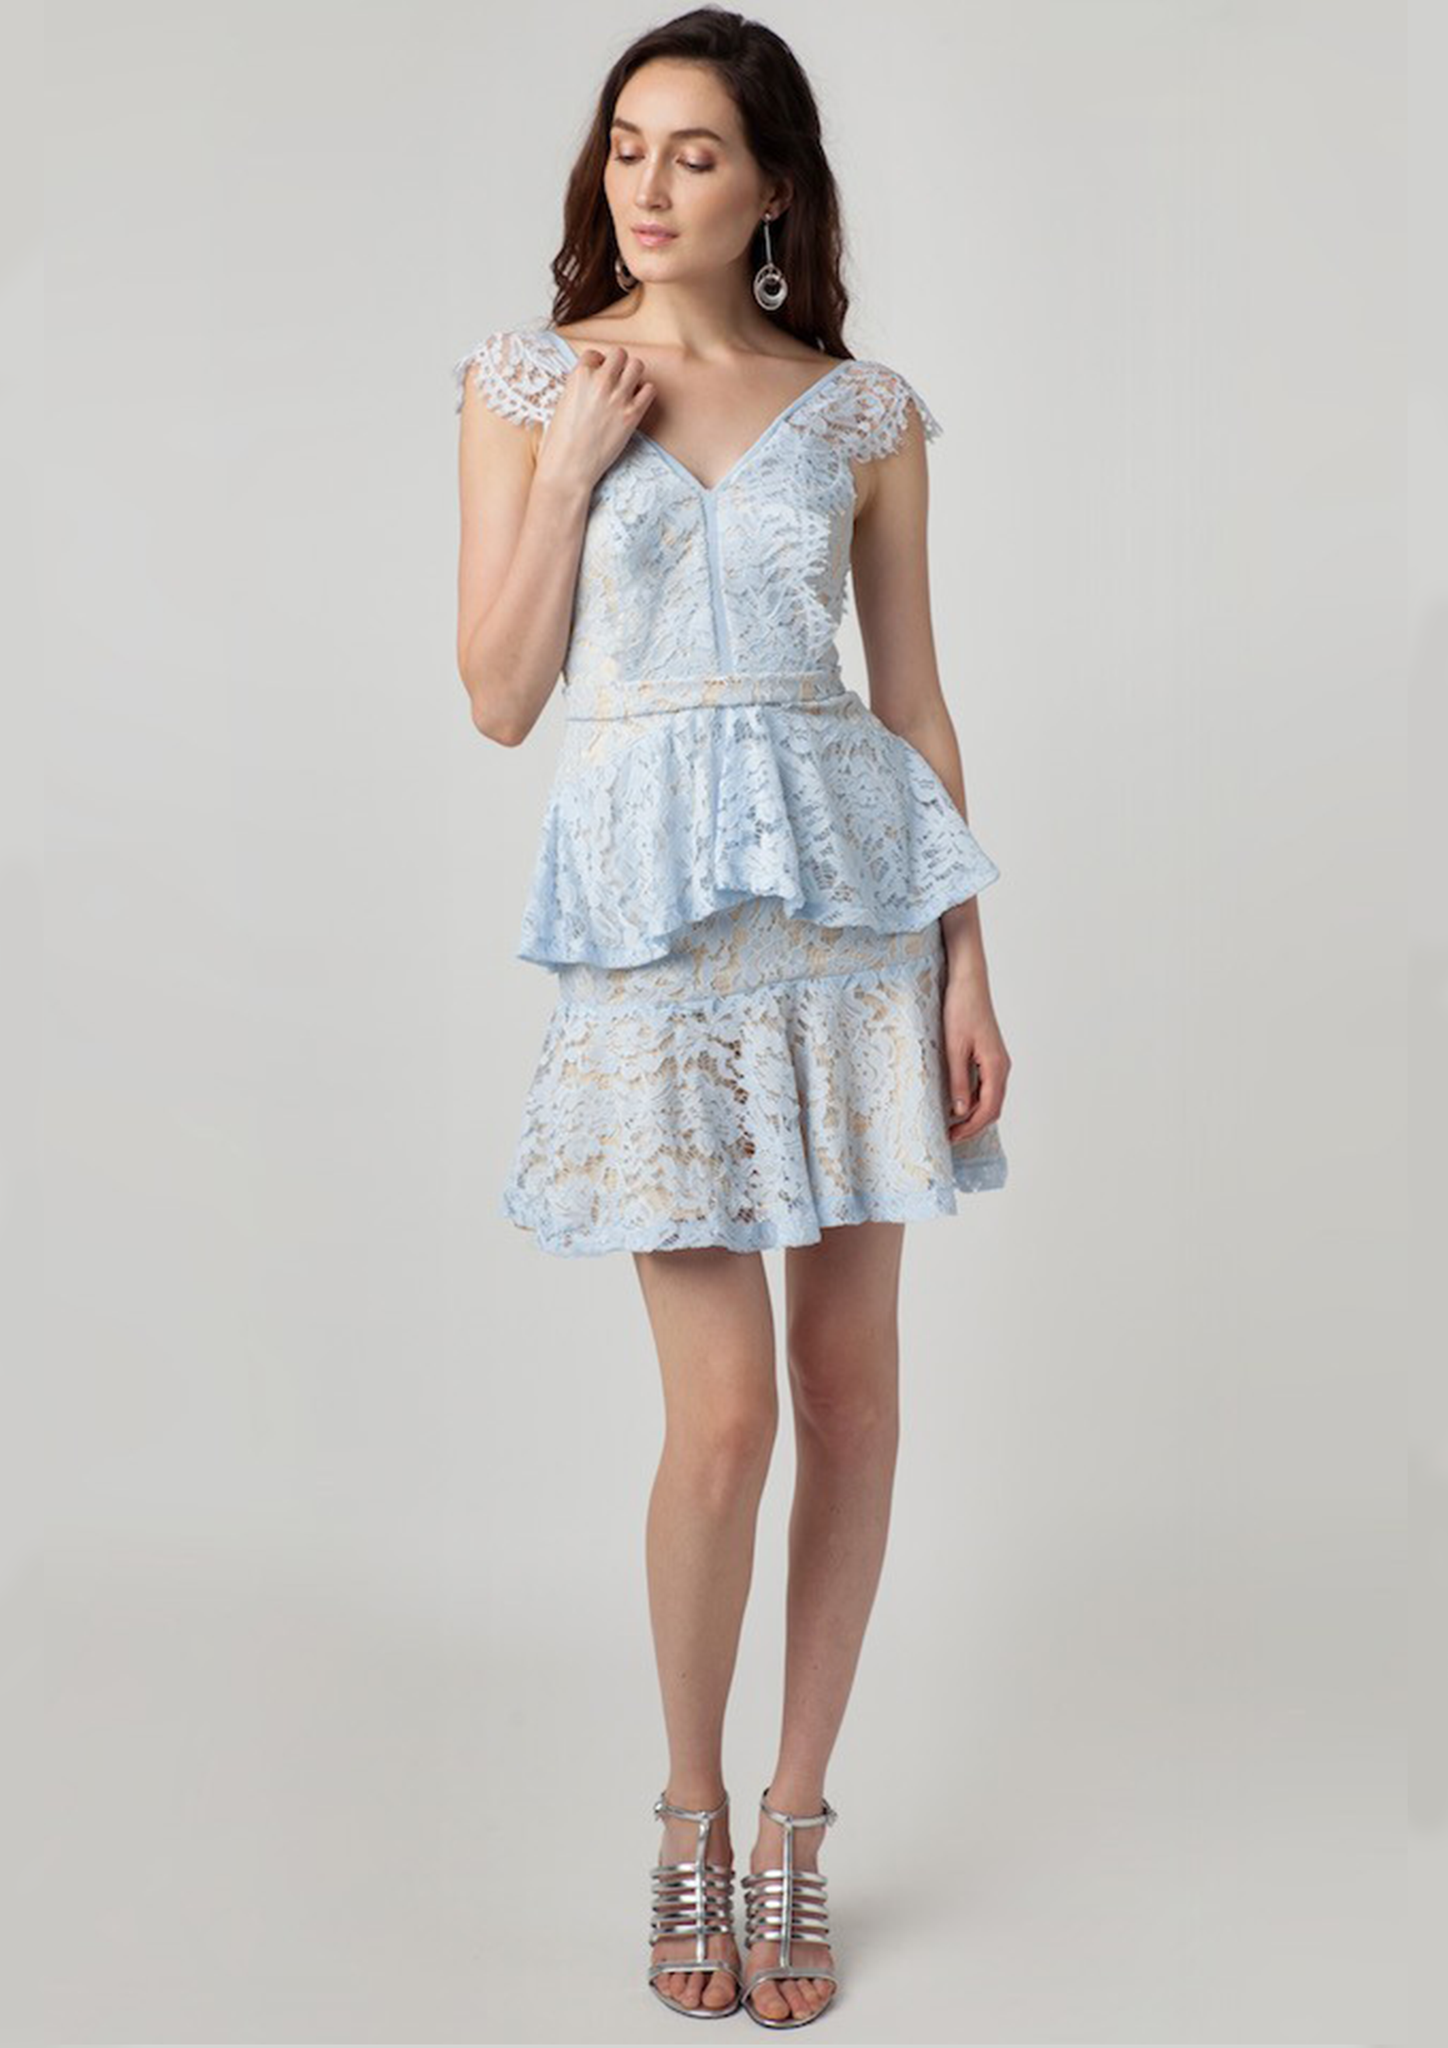 Daisy Lace Ruffle Mini Dress (Sky Blue)